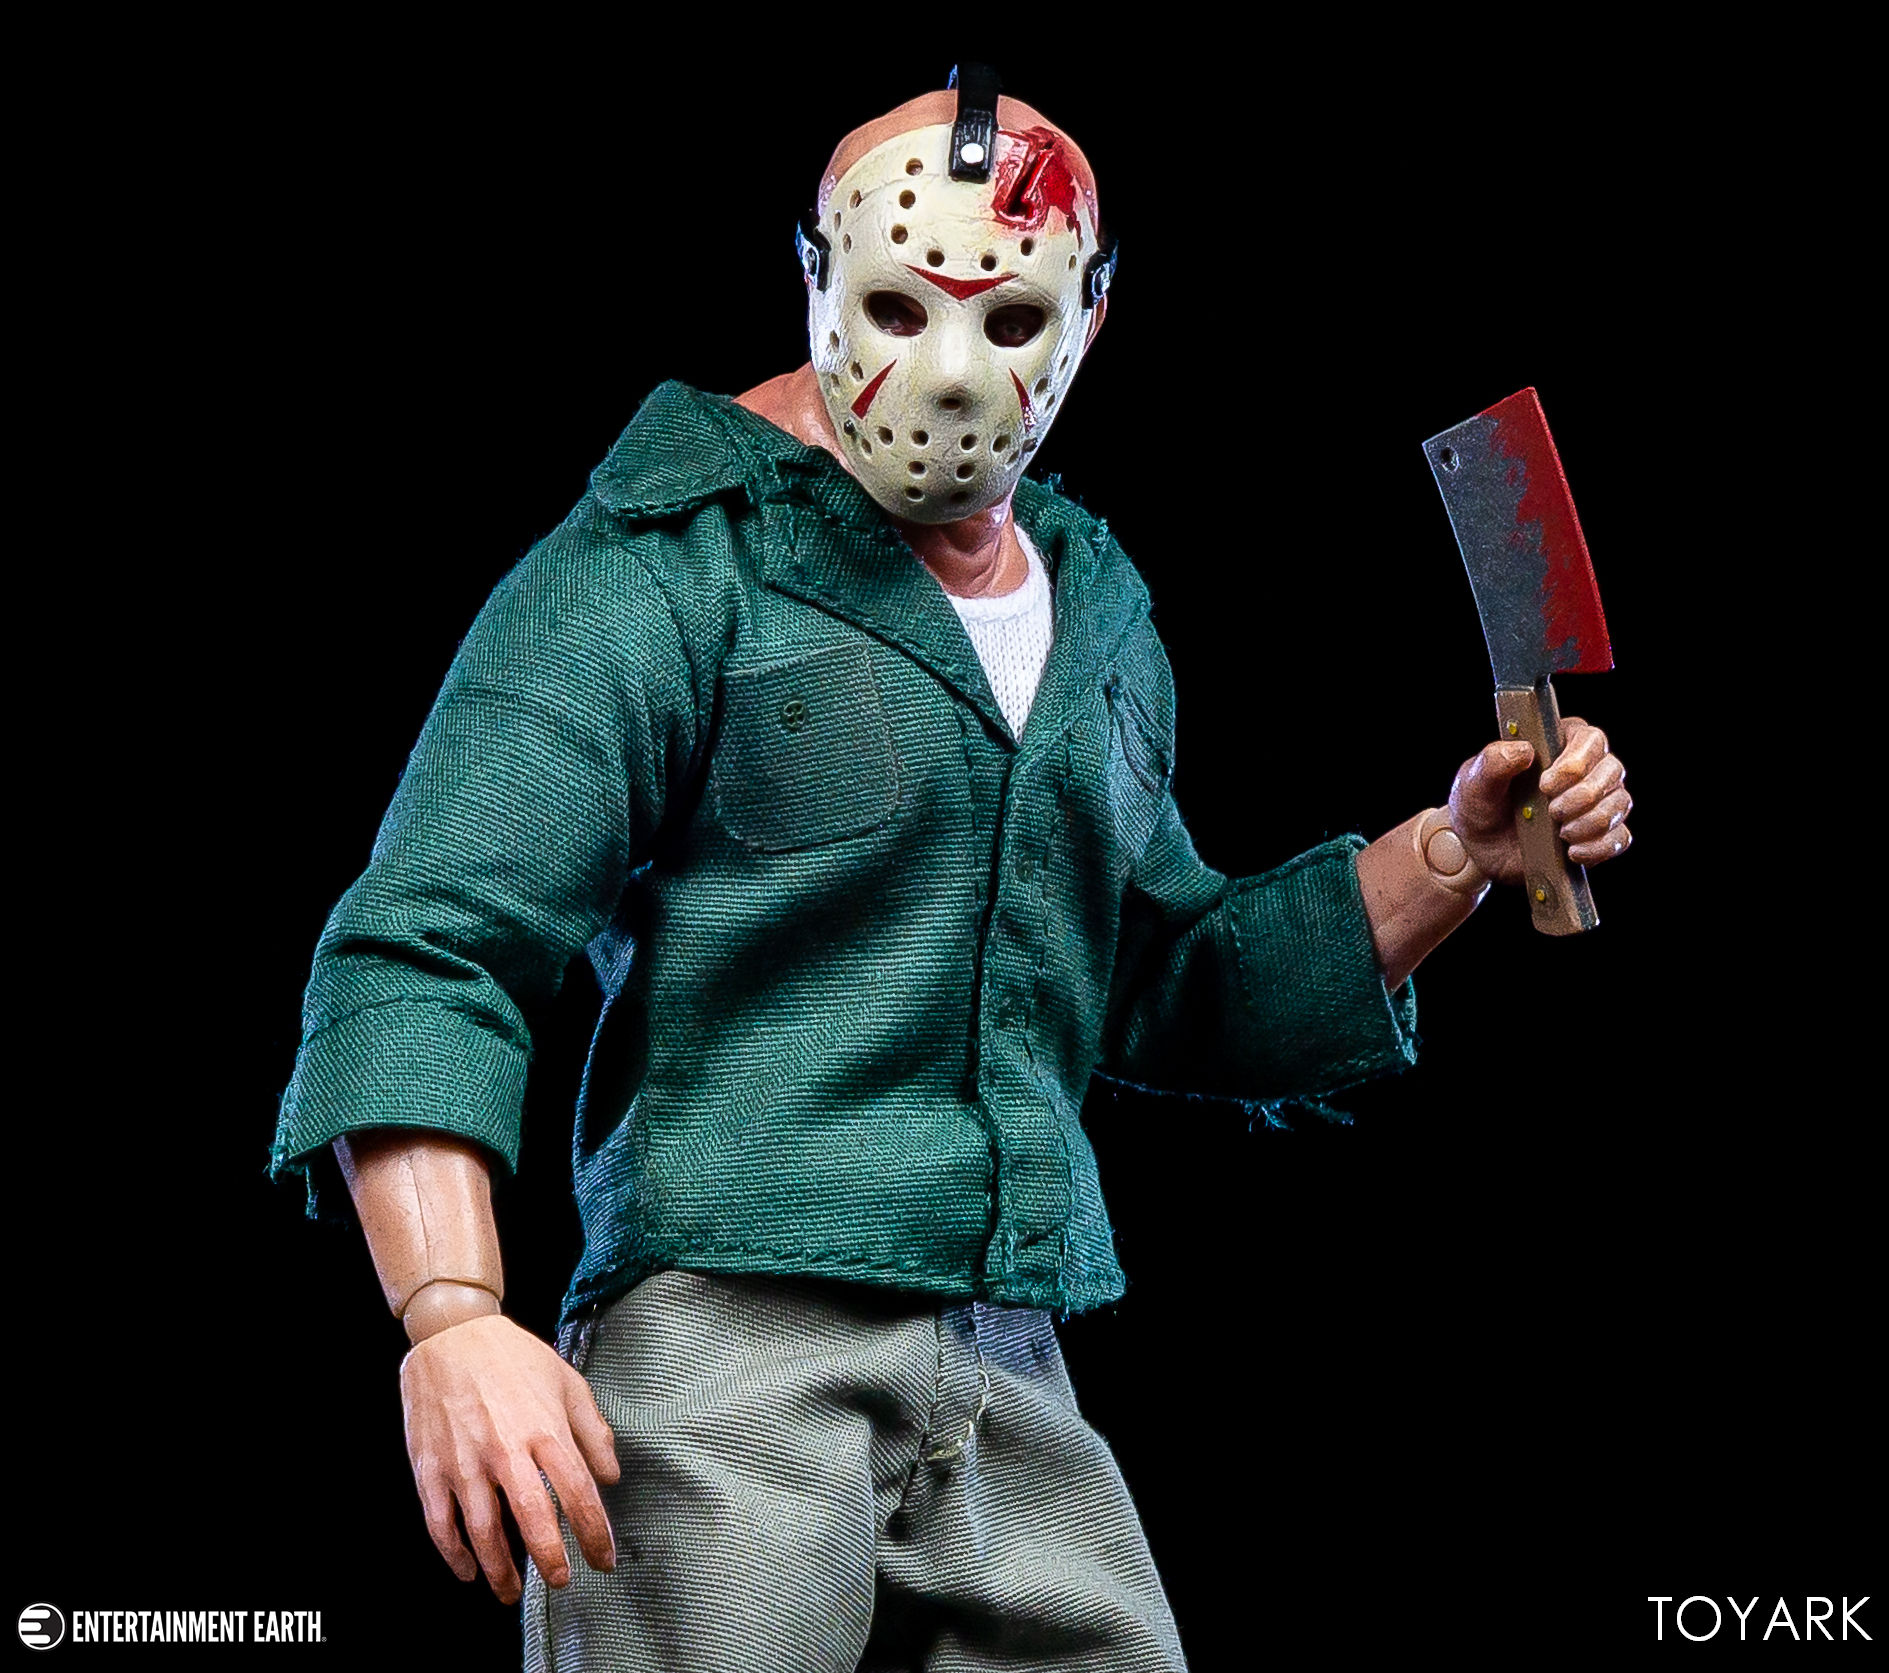 https://news.toyark.com/wp-content/uploads/sites/4/2019/04/One12-Part-3-Jason-Voorhees-030.jpg